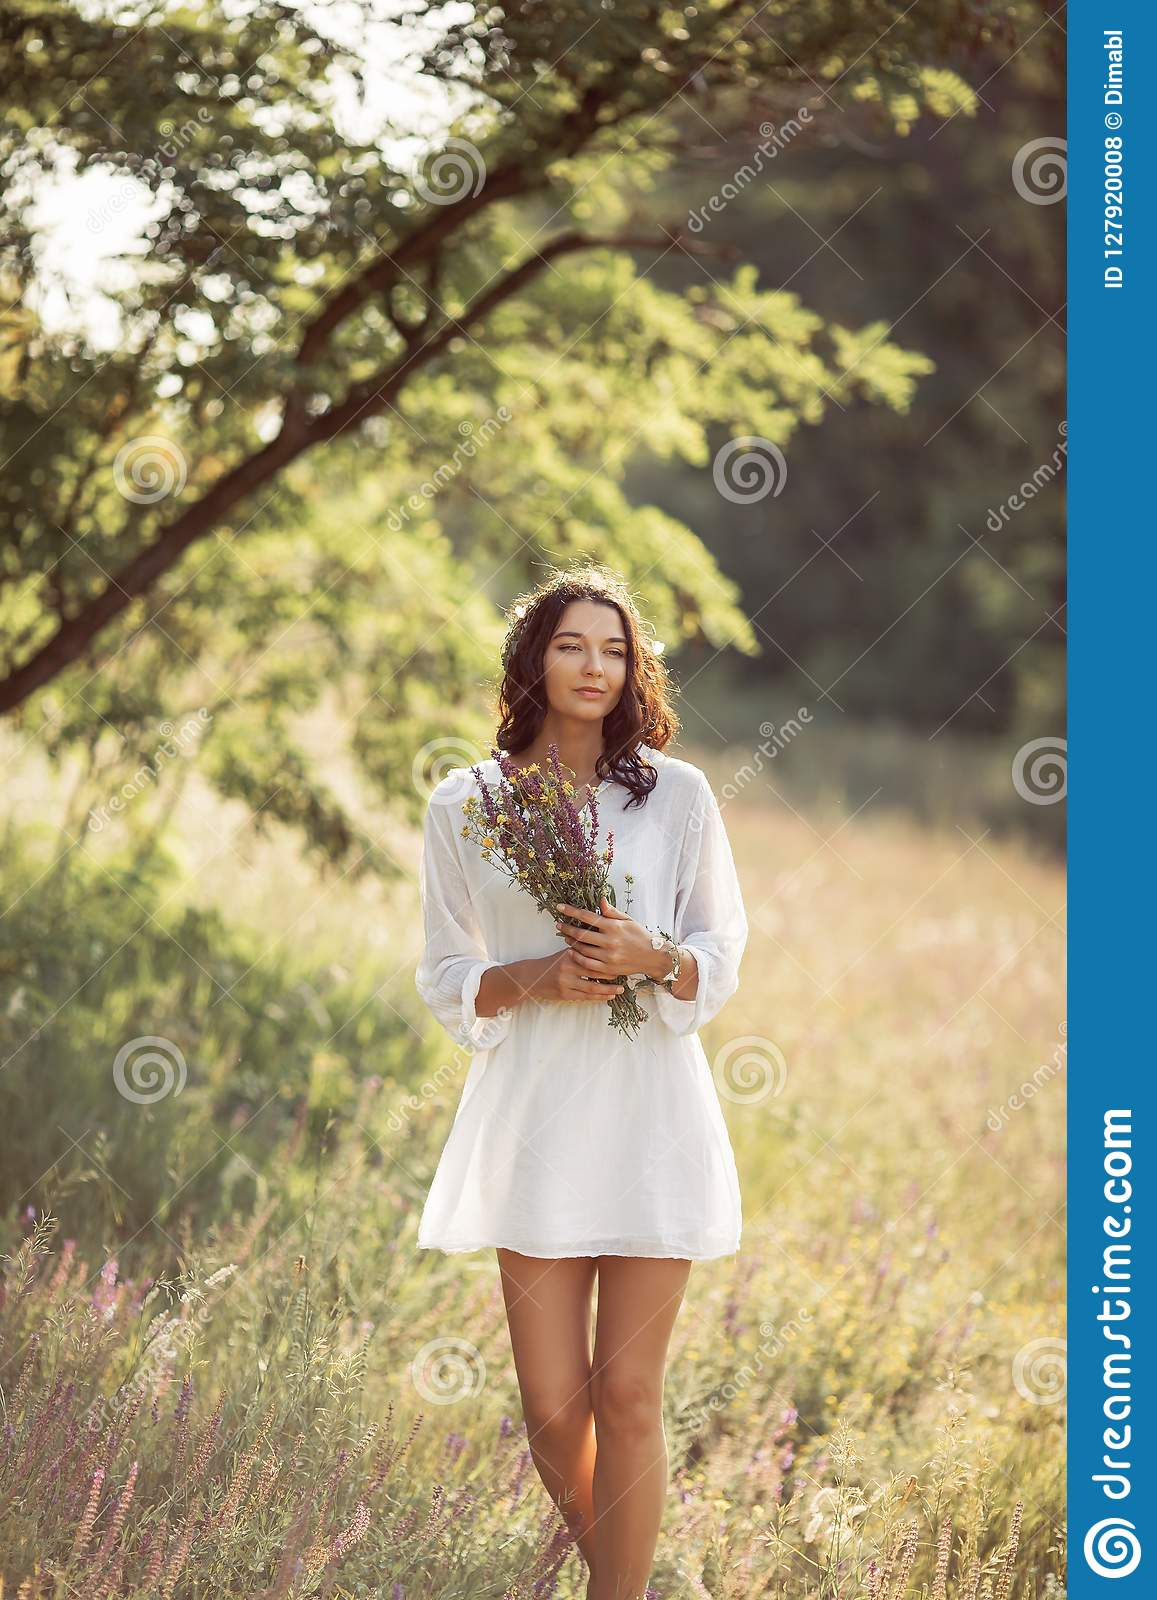 Natural Beauty Girl With Bouquet Of Flowers Outdoor In Freedom Enjoyment Concept Stock Photo Image Of Lifestyle Beauty 127920008